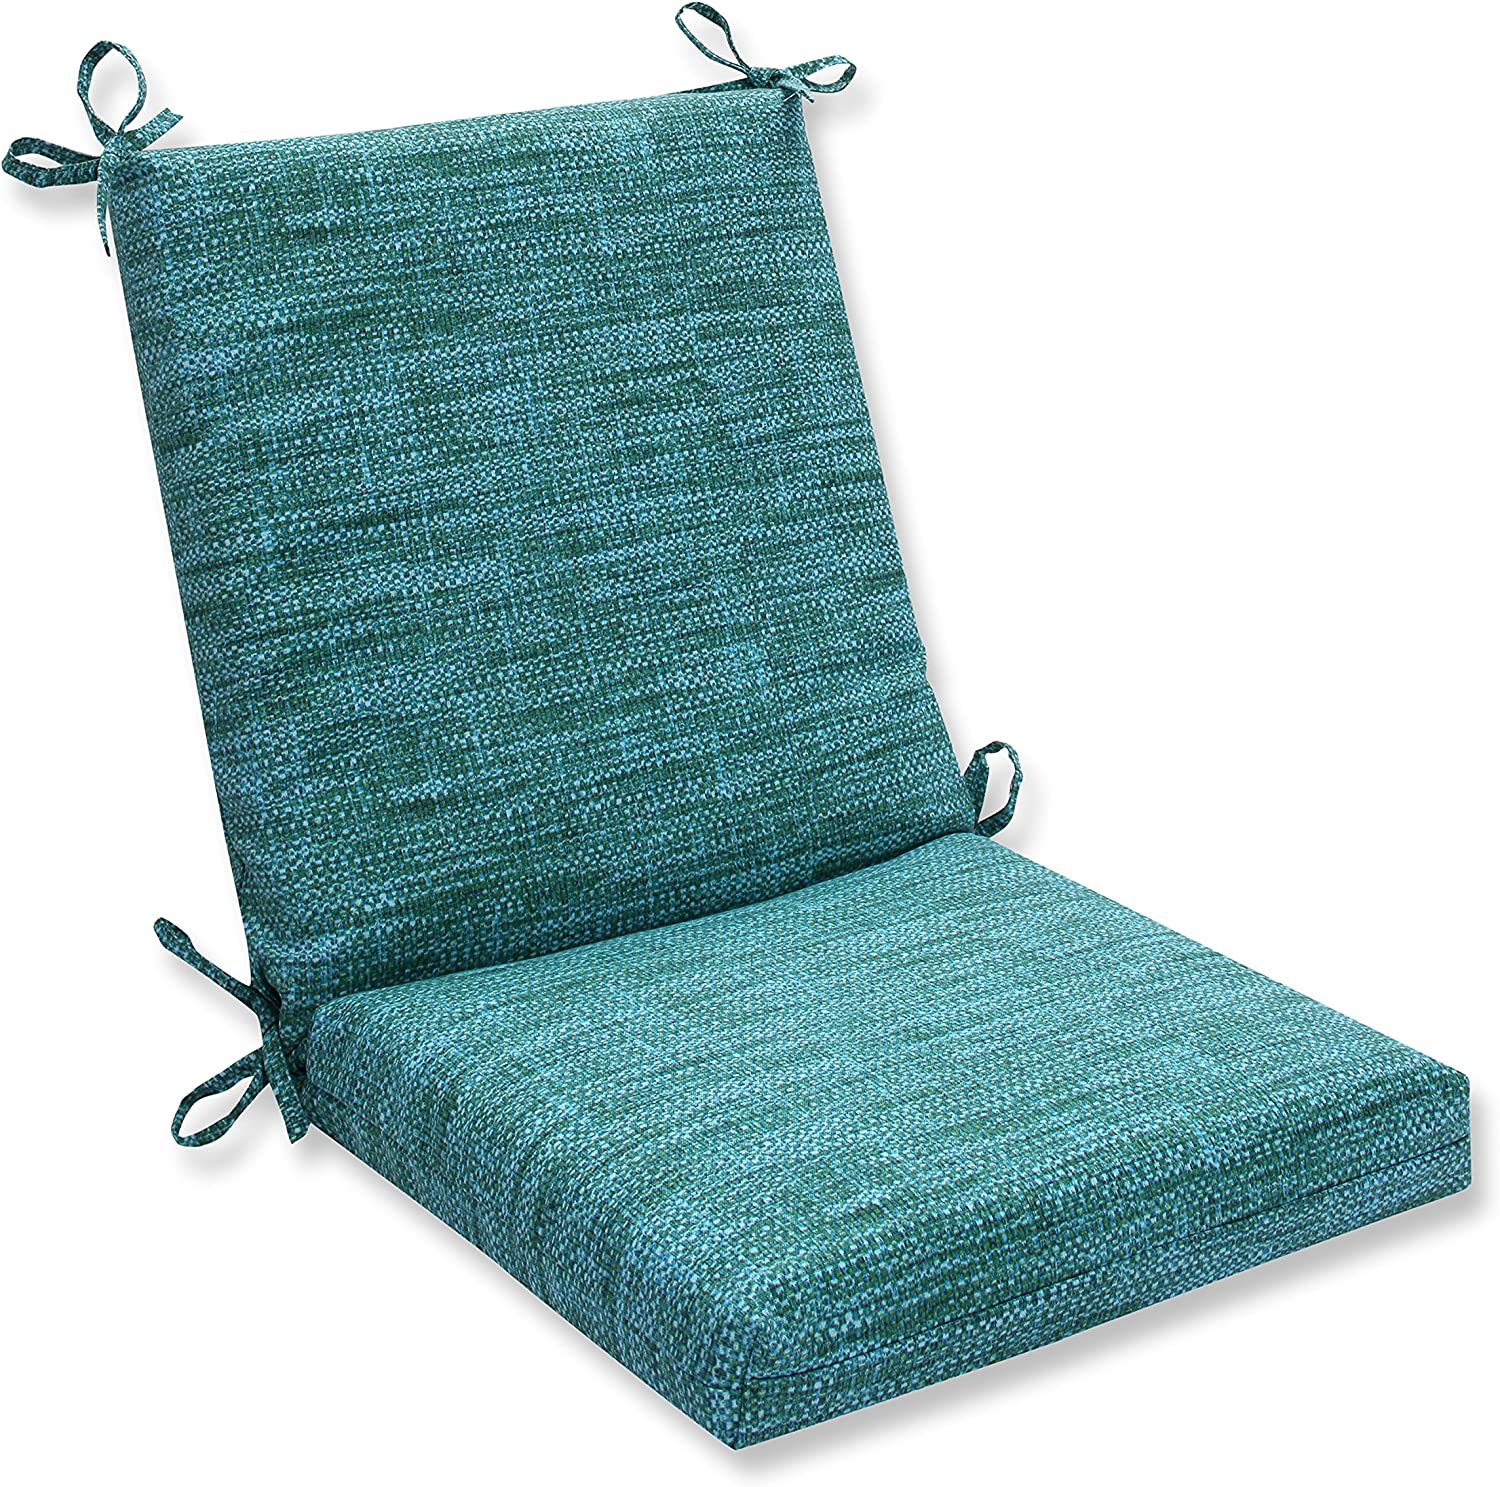 "Pillow Perfect Outdoor/Indoor Remi Lagoon Square Corner Chair Cushion, 36.5"" x 18"", Blue"